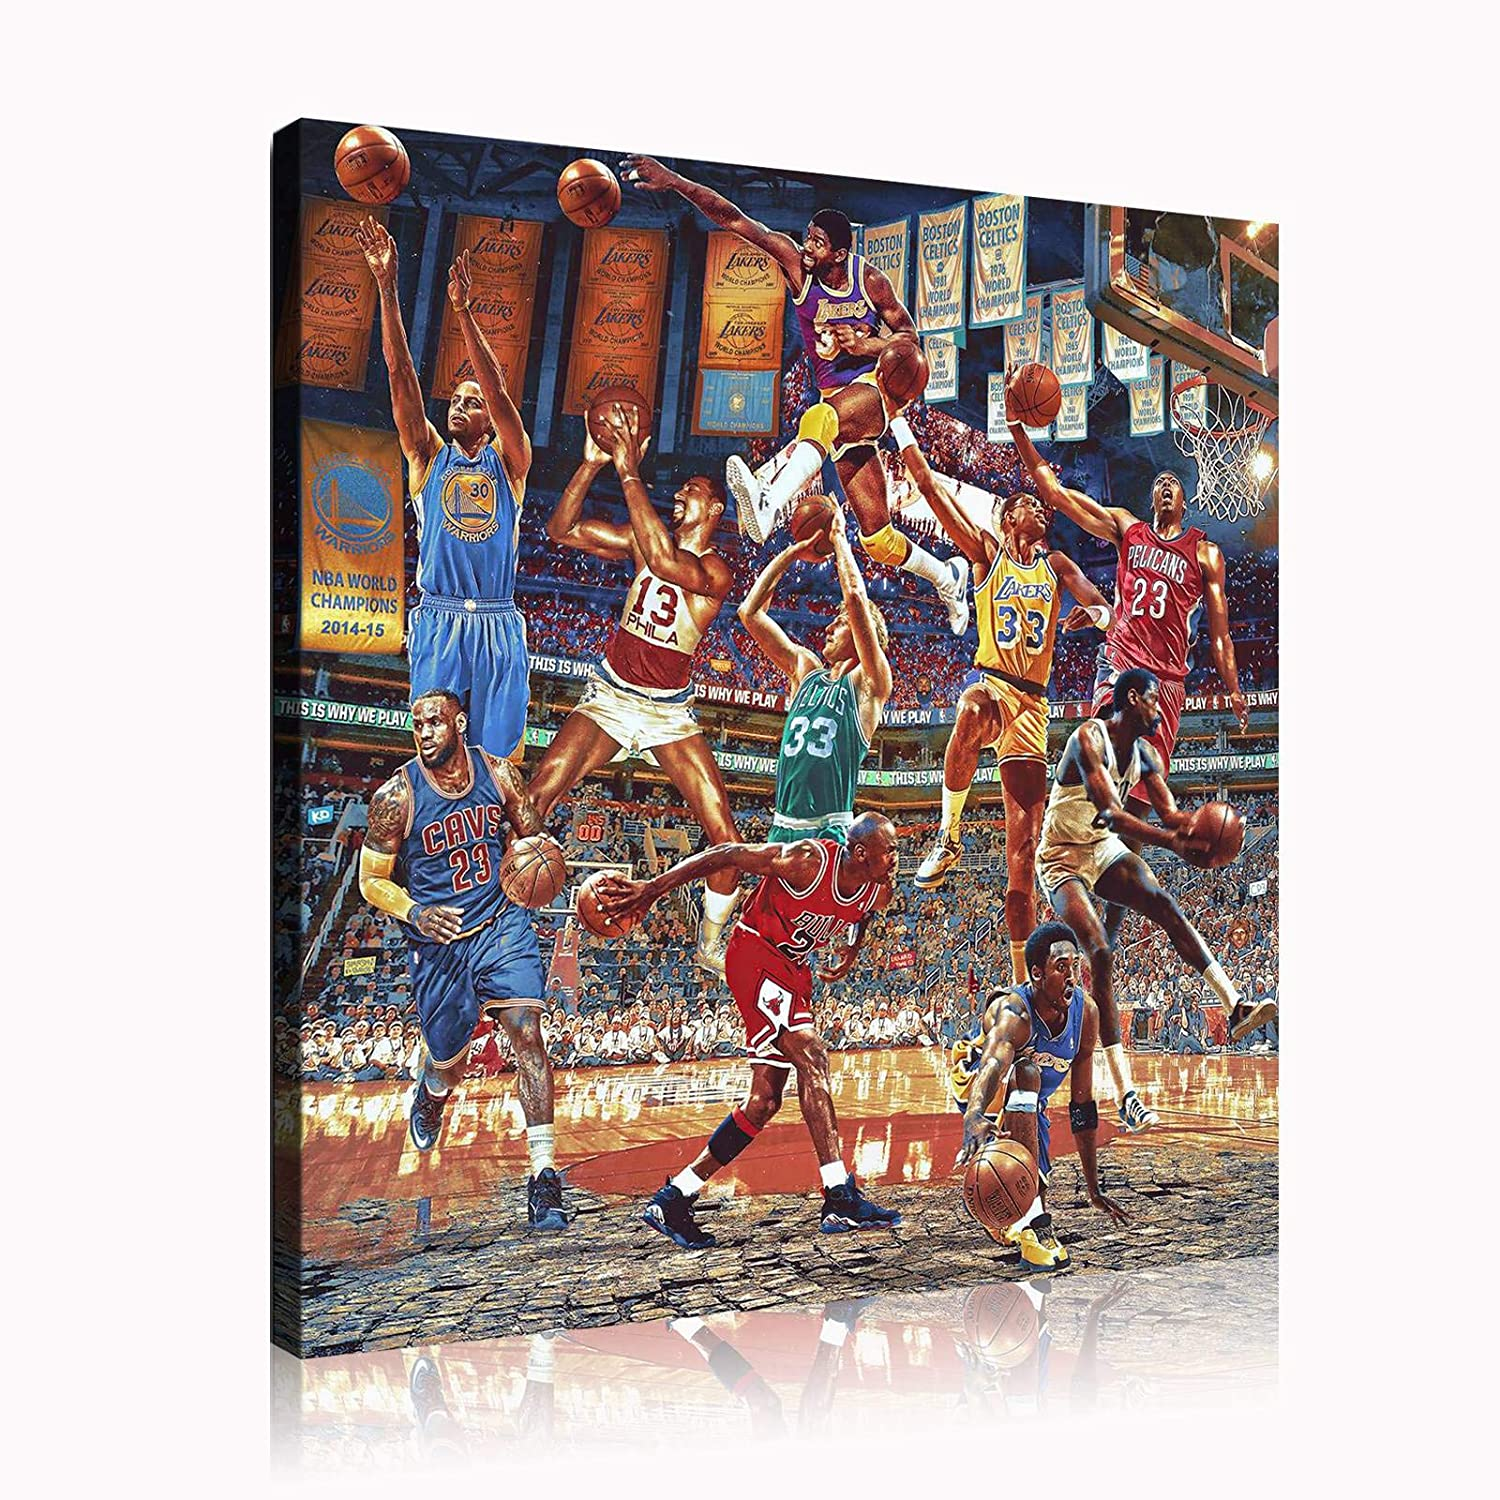 NTEUMM Super Online limited Very popular product sports star big poster collections basketball Room